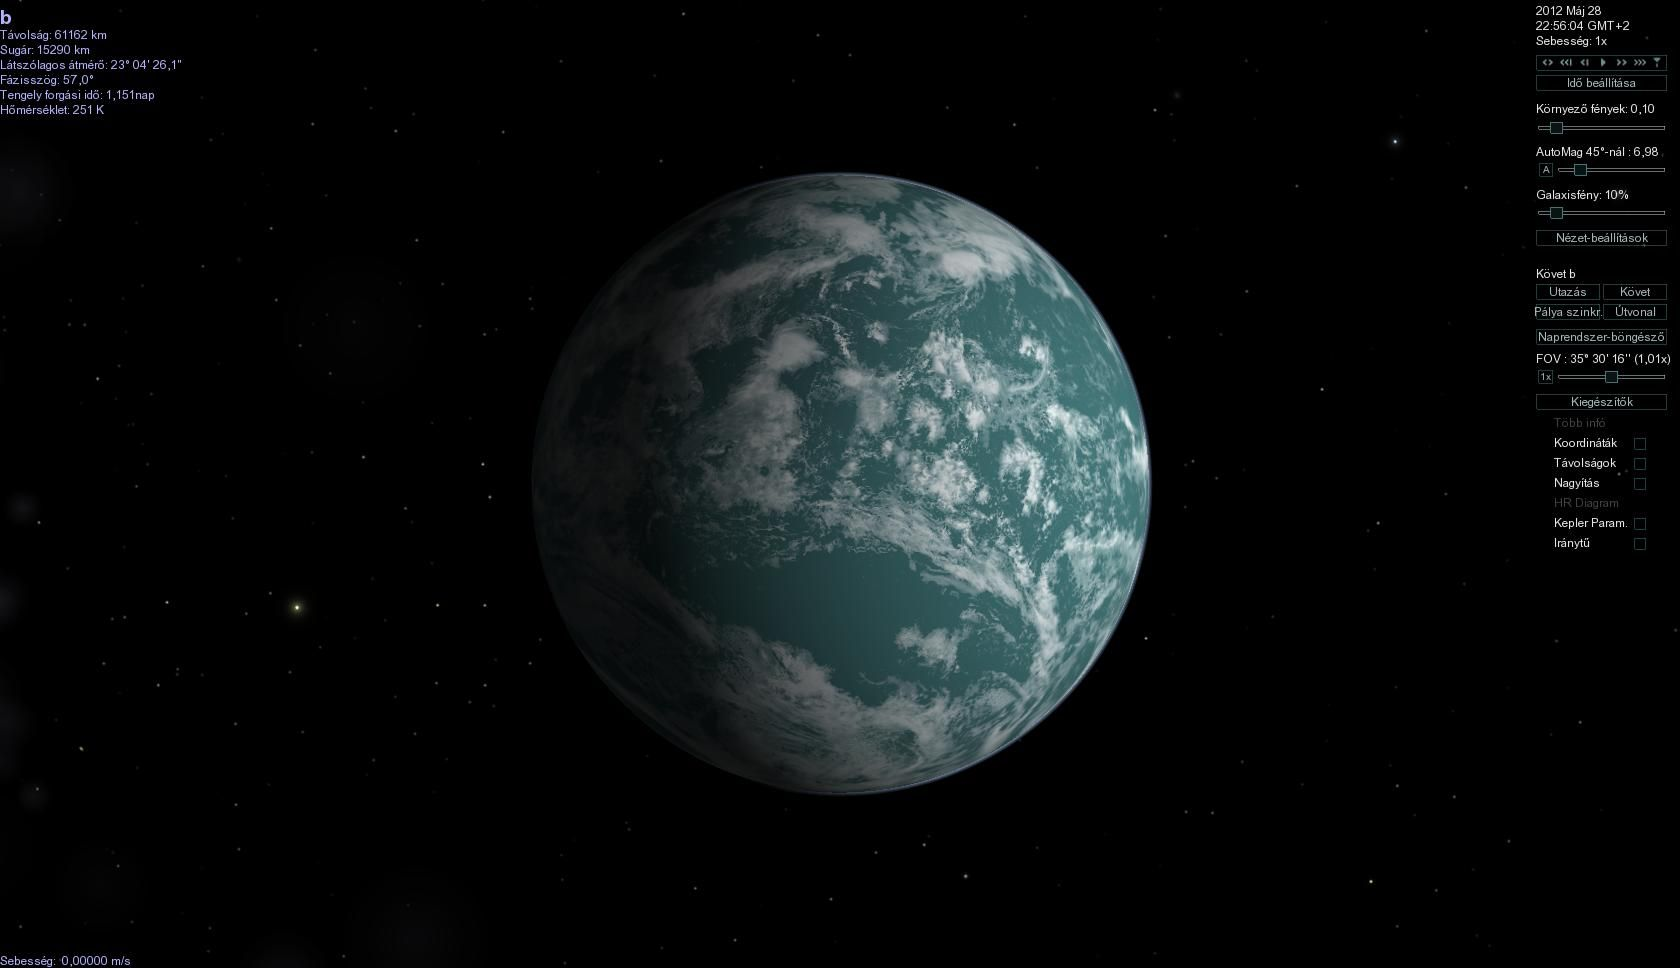 earth like planets kepler 22b - photo #2